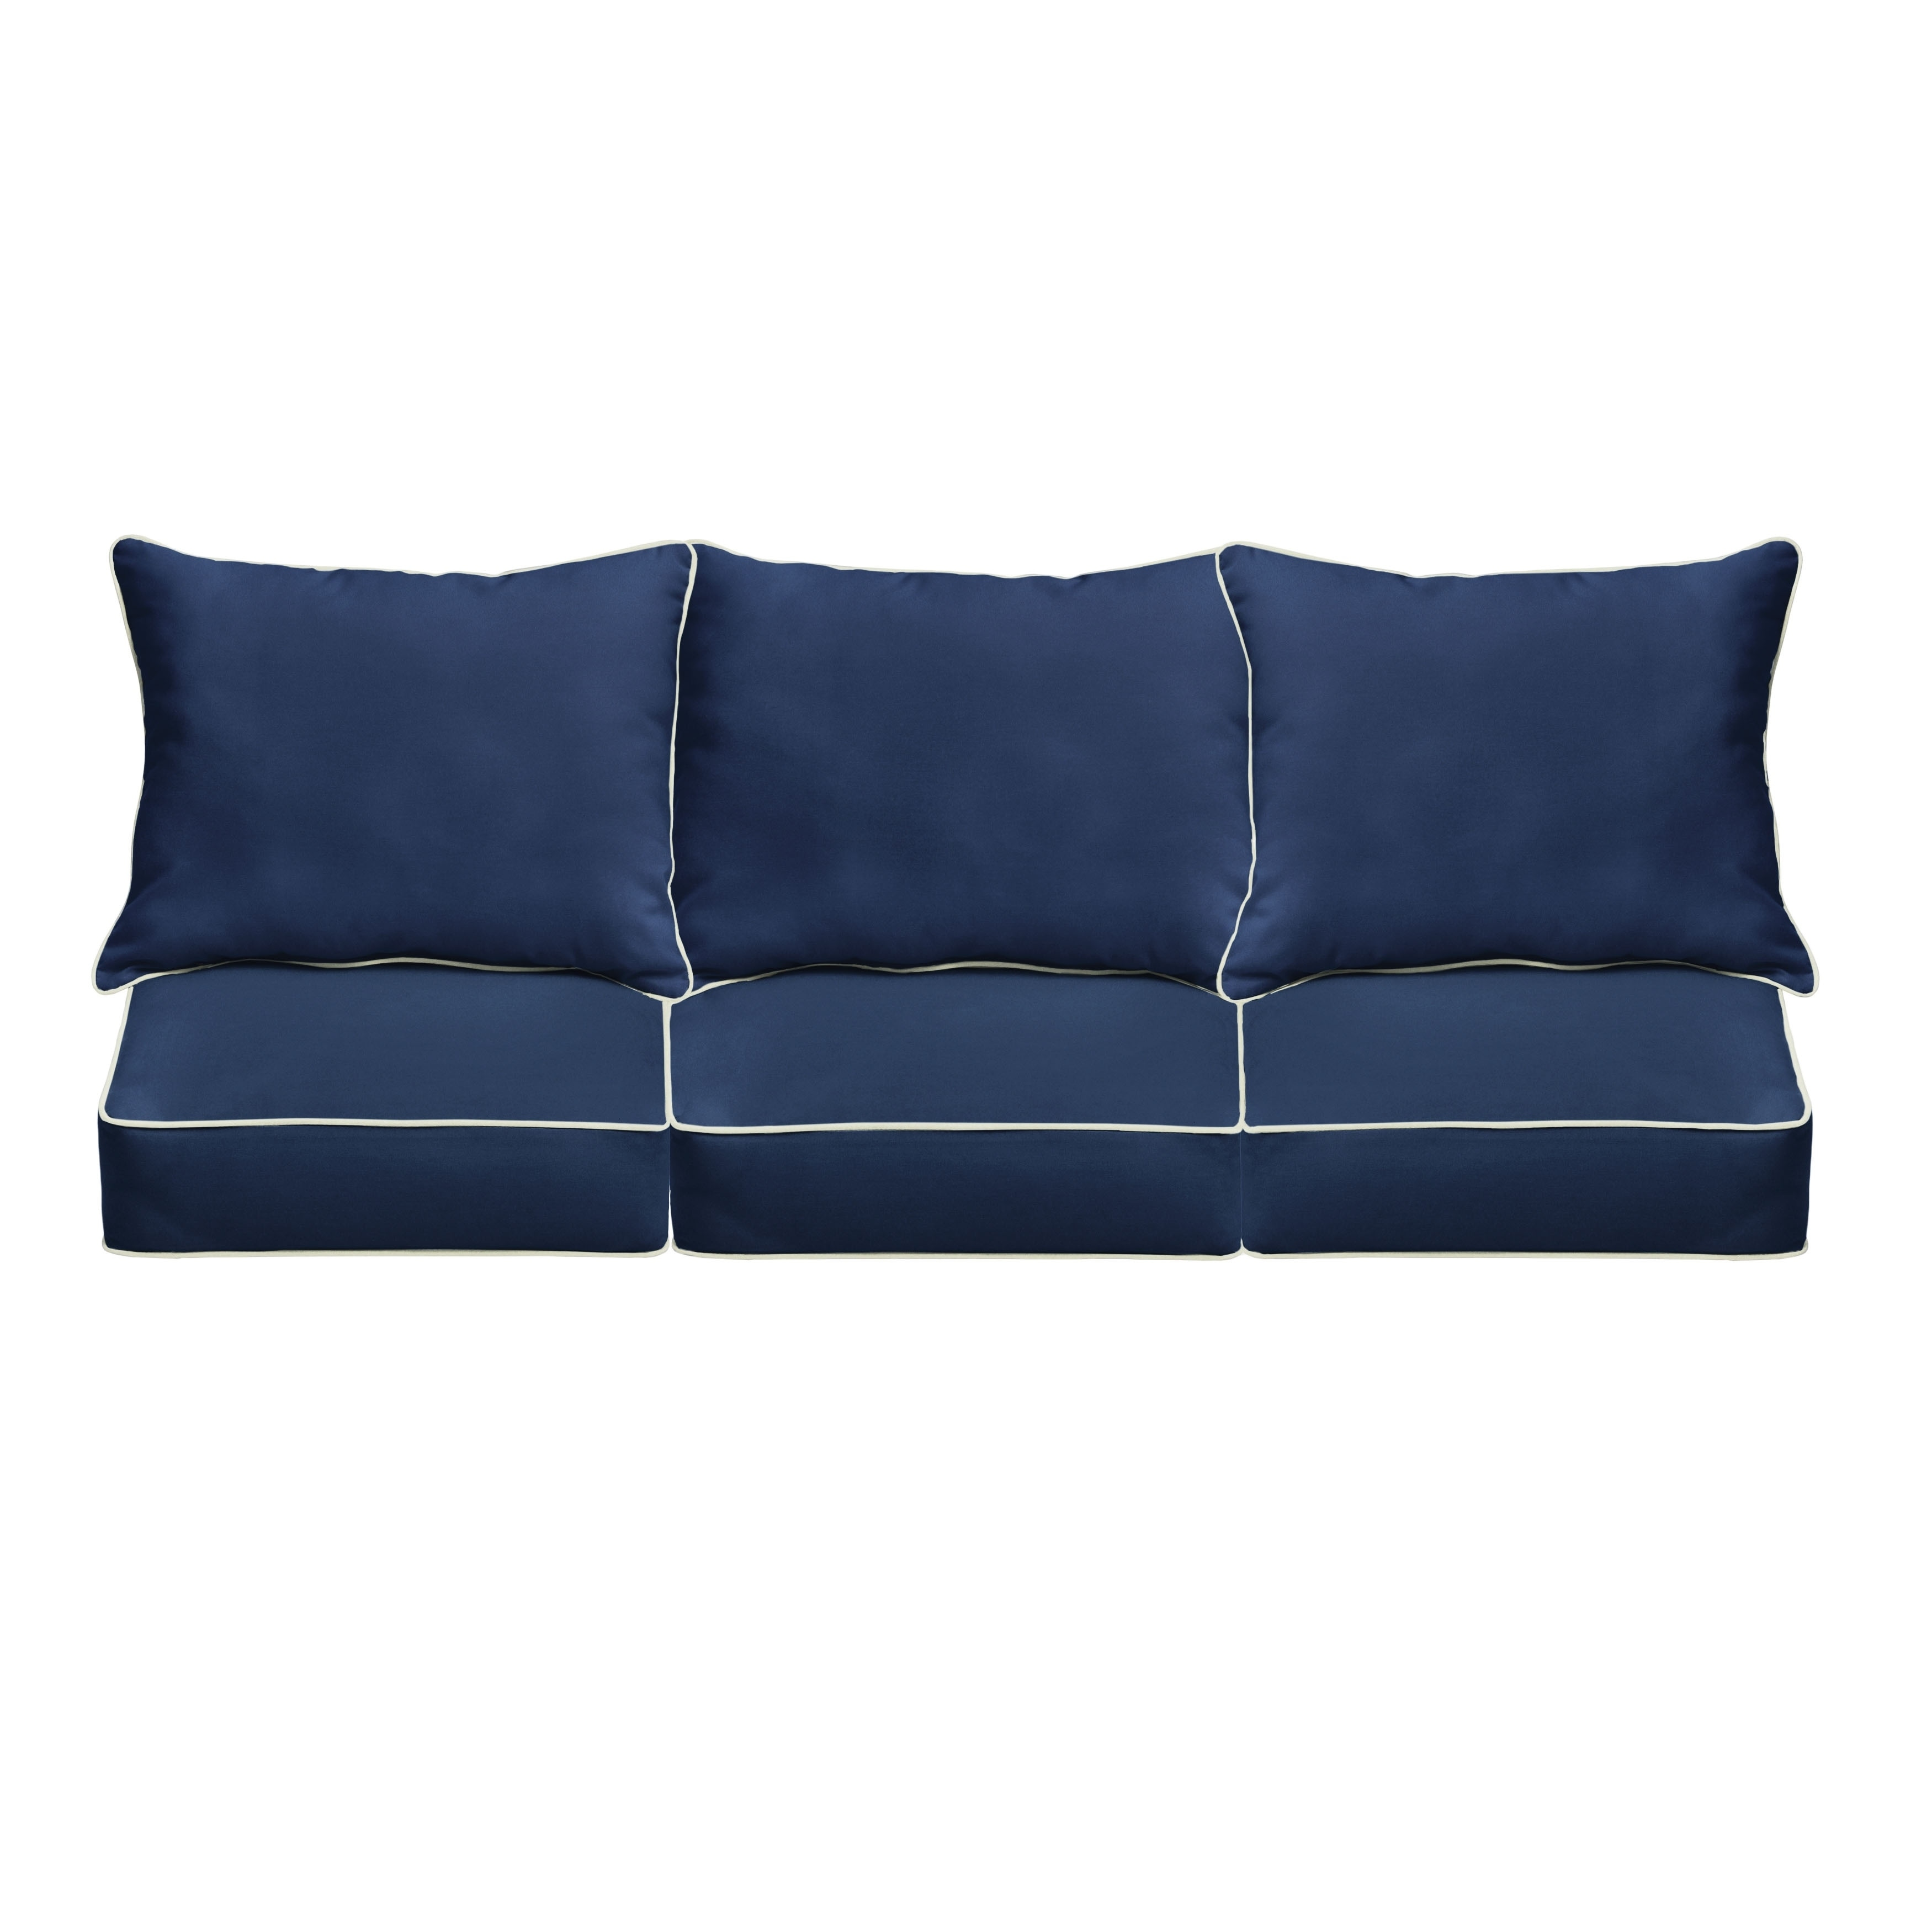 Sofa Cushions Near Me Buy Sunbrella Outdoor Cushions Pillows Online At Overstock